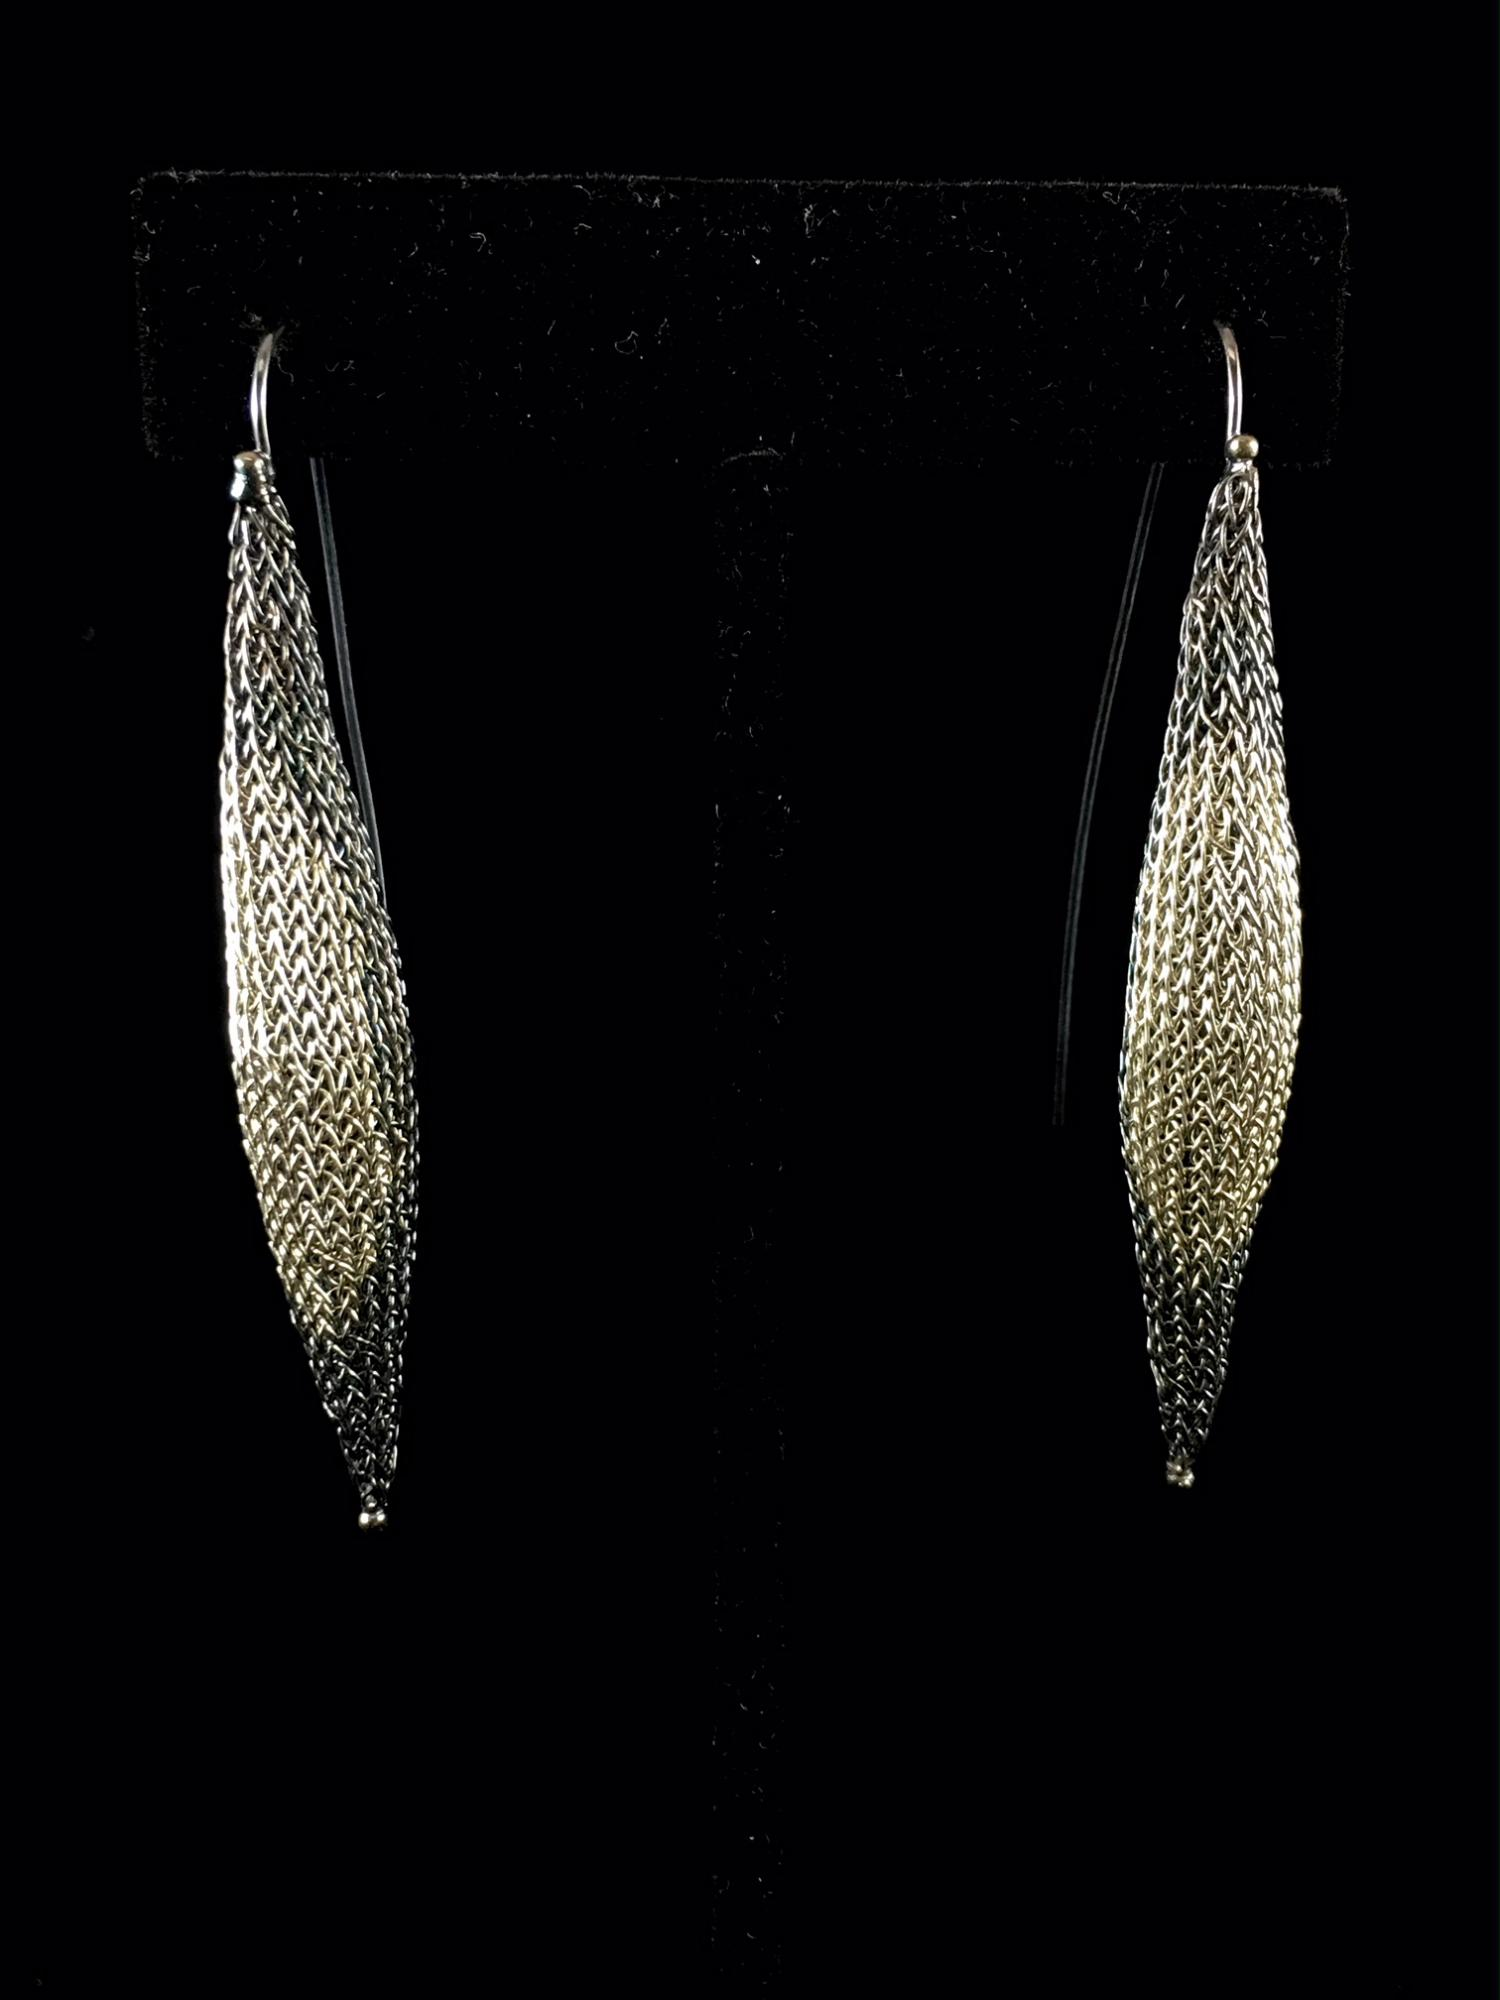 Woven Earrings plated with  Sterling Silver and oxidized (119BW) - Sold